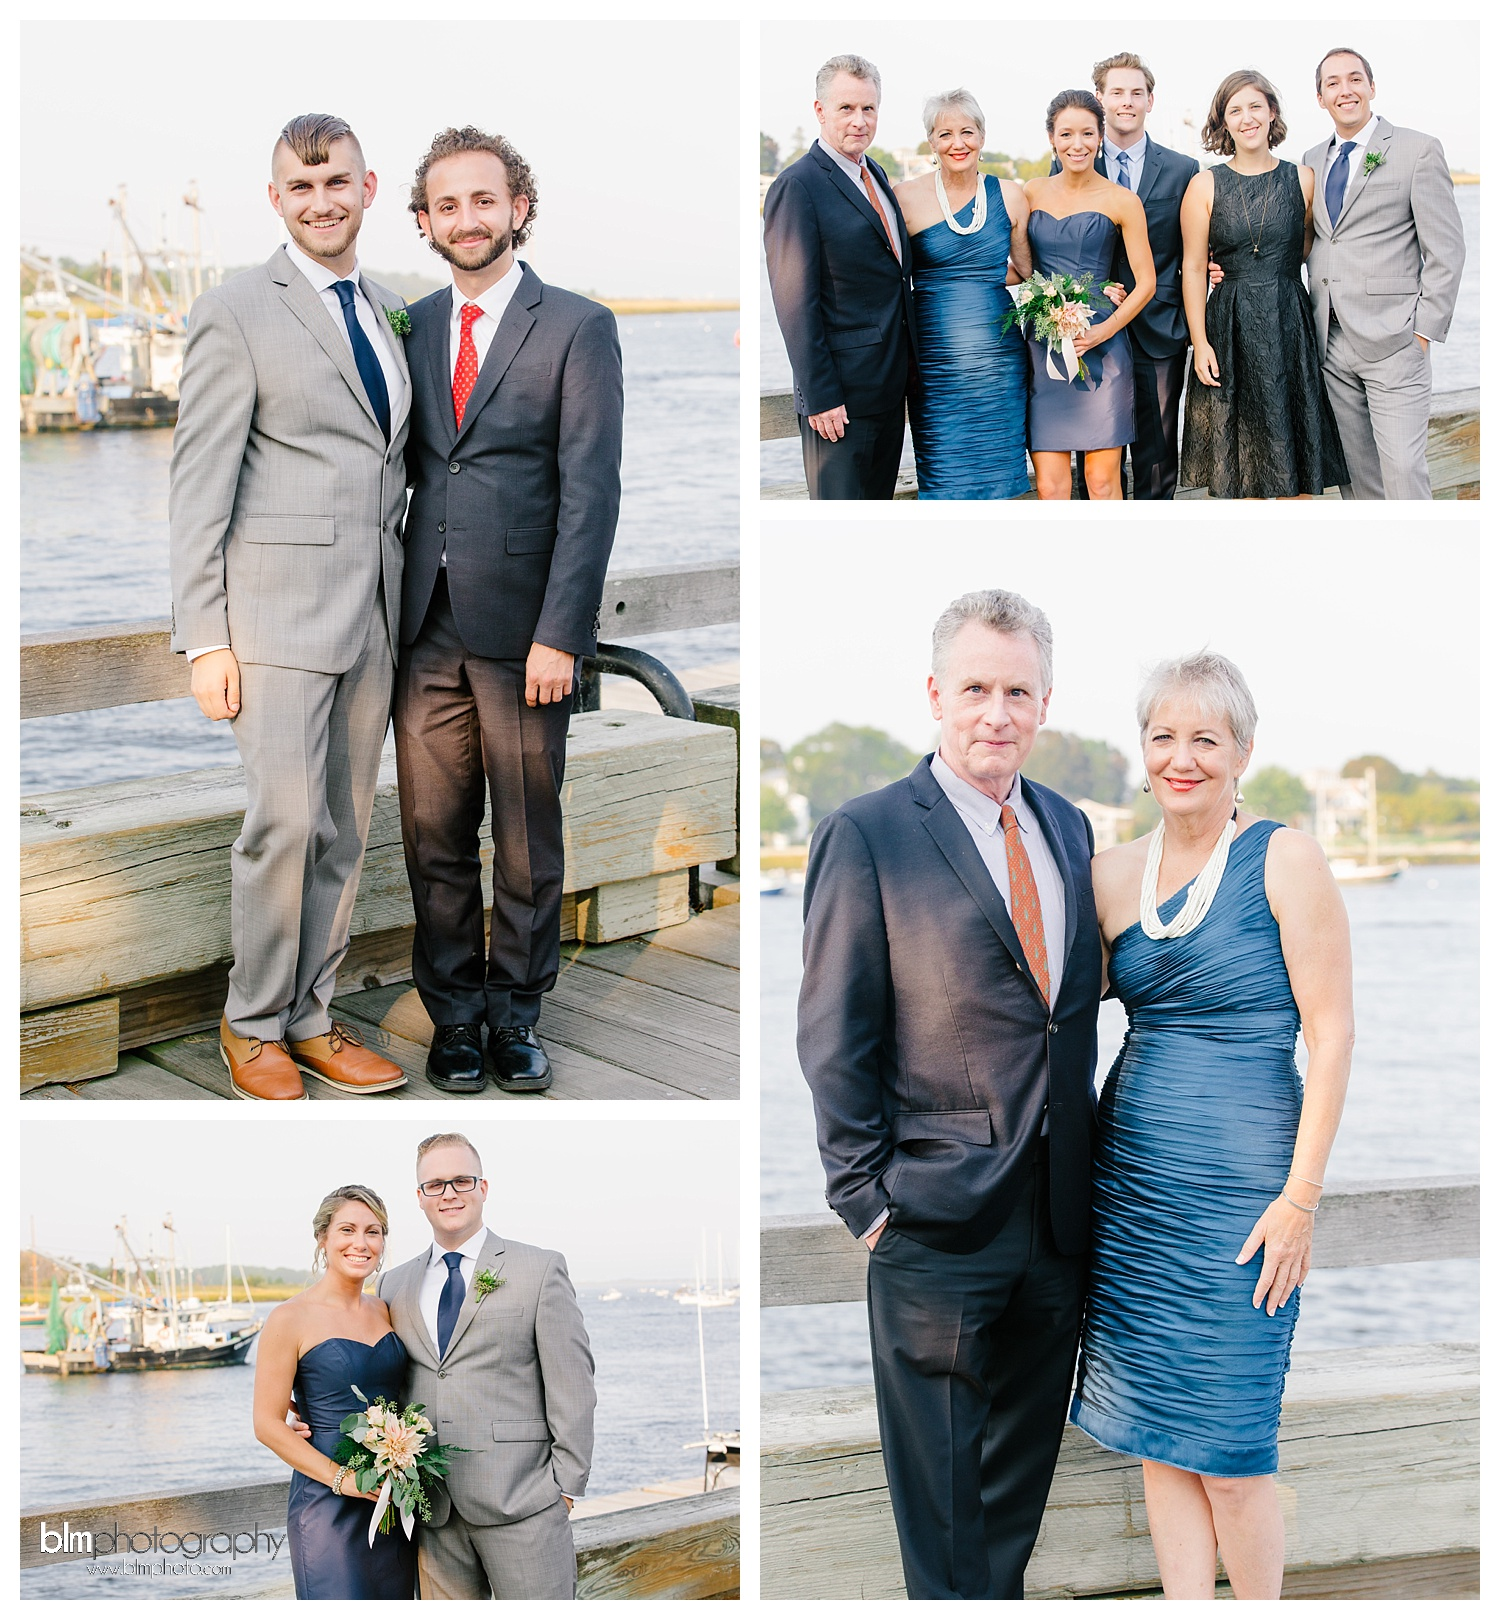 239Nathalie & Kirwan Married at The Maritime Museum_20170916_4048.jpg